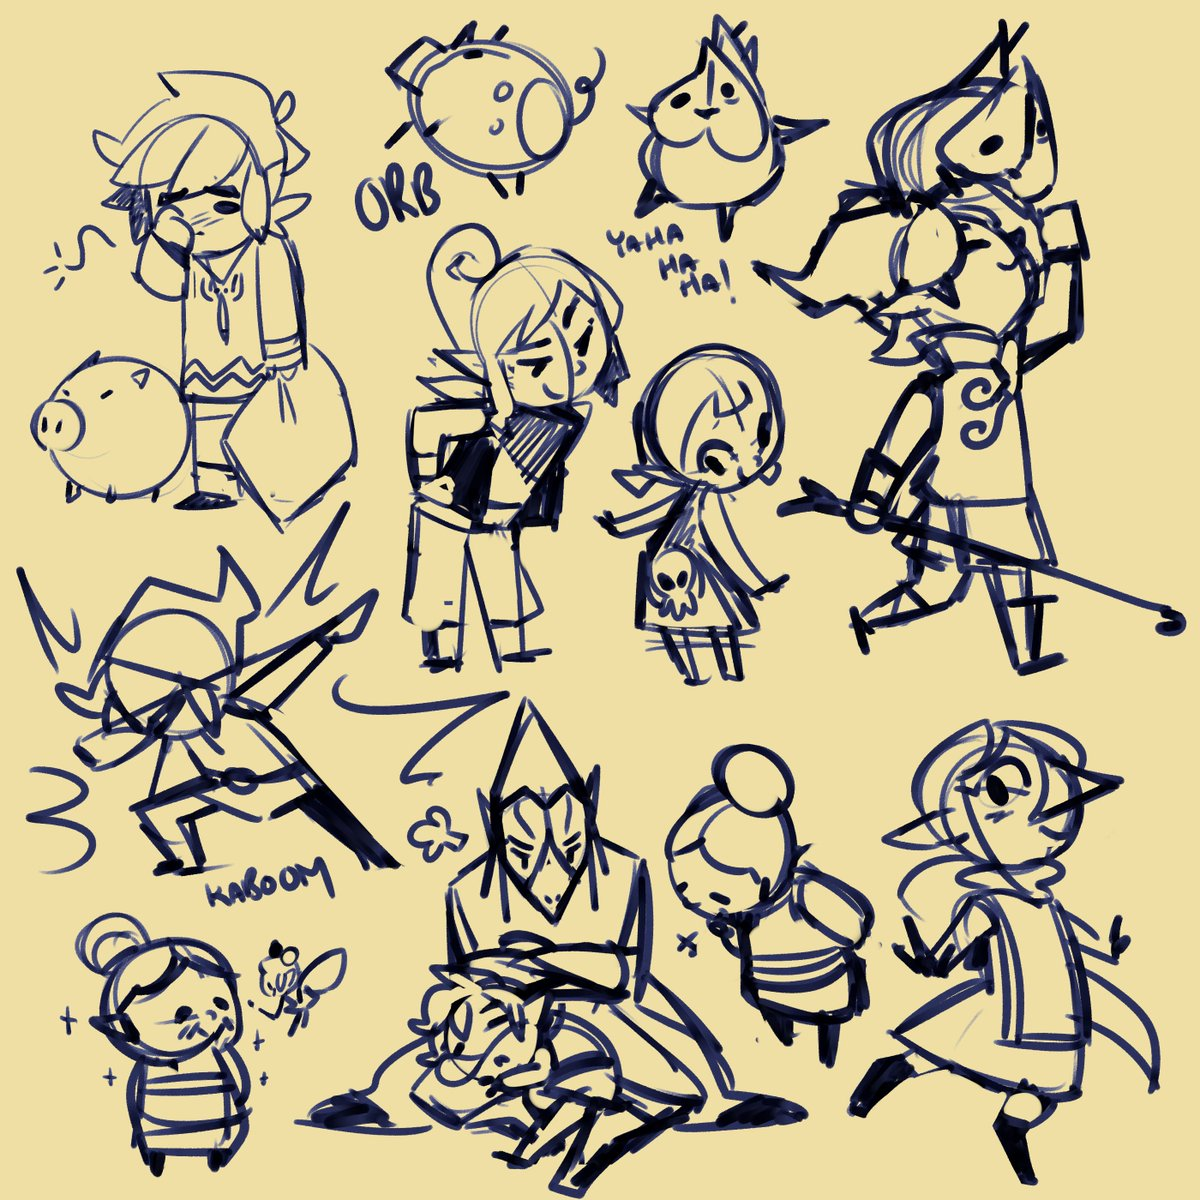 welp I think i should sleep but I was too tired to do much more than  doodle for the Wind Waker run. May do something with these?   #windwaker #loz #LegendofZelda @GamesDoneQuick<br>http://pic.twitter.com/RQqyWwytkE